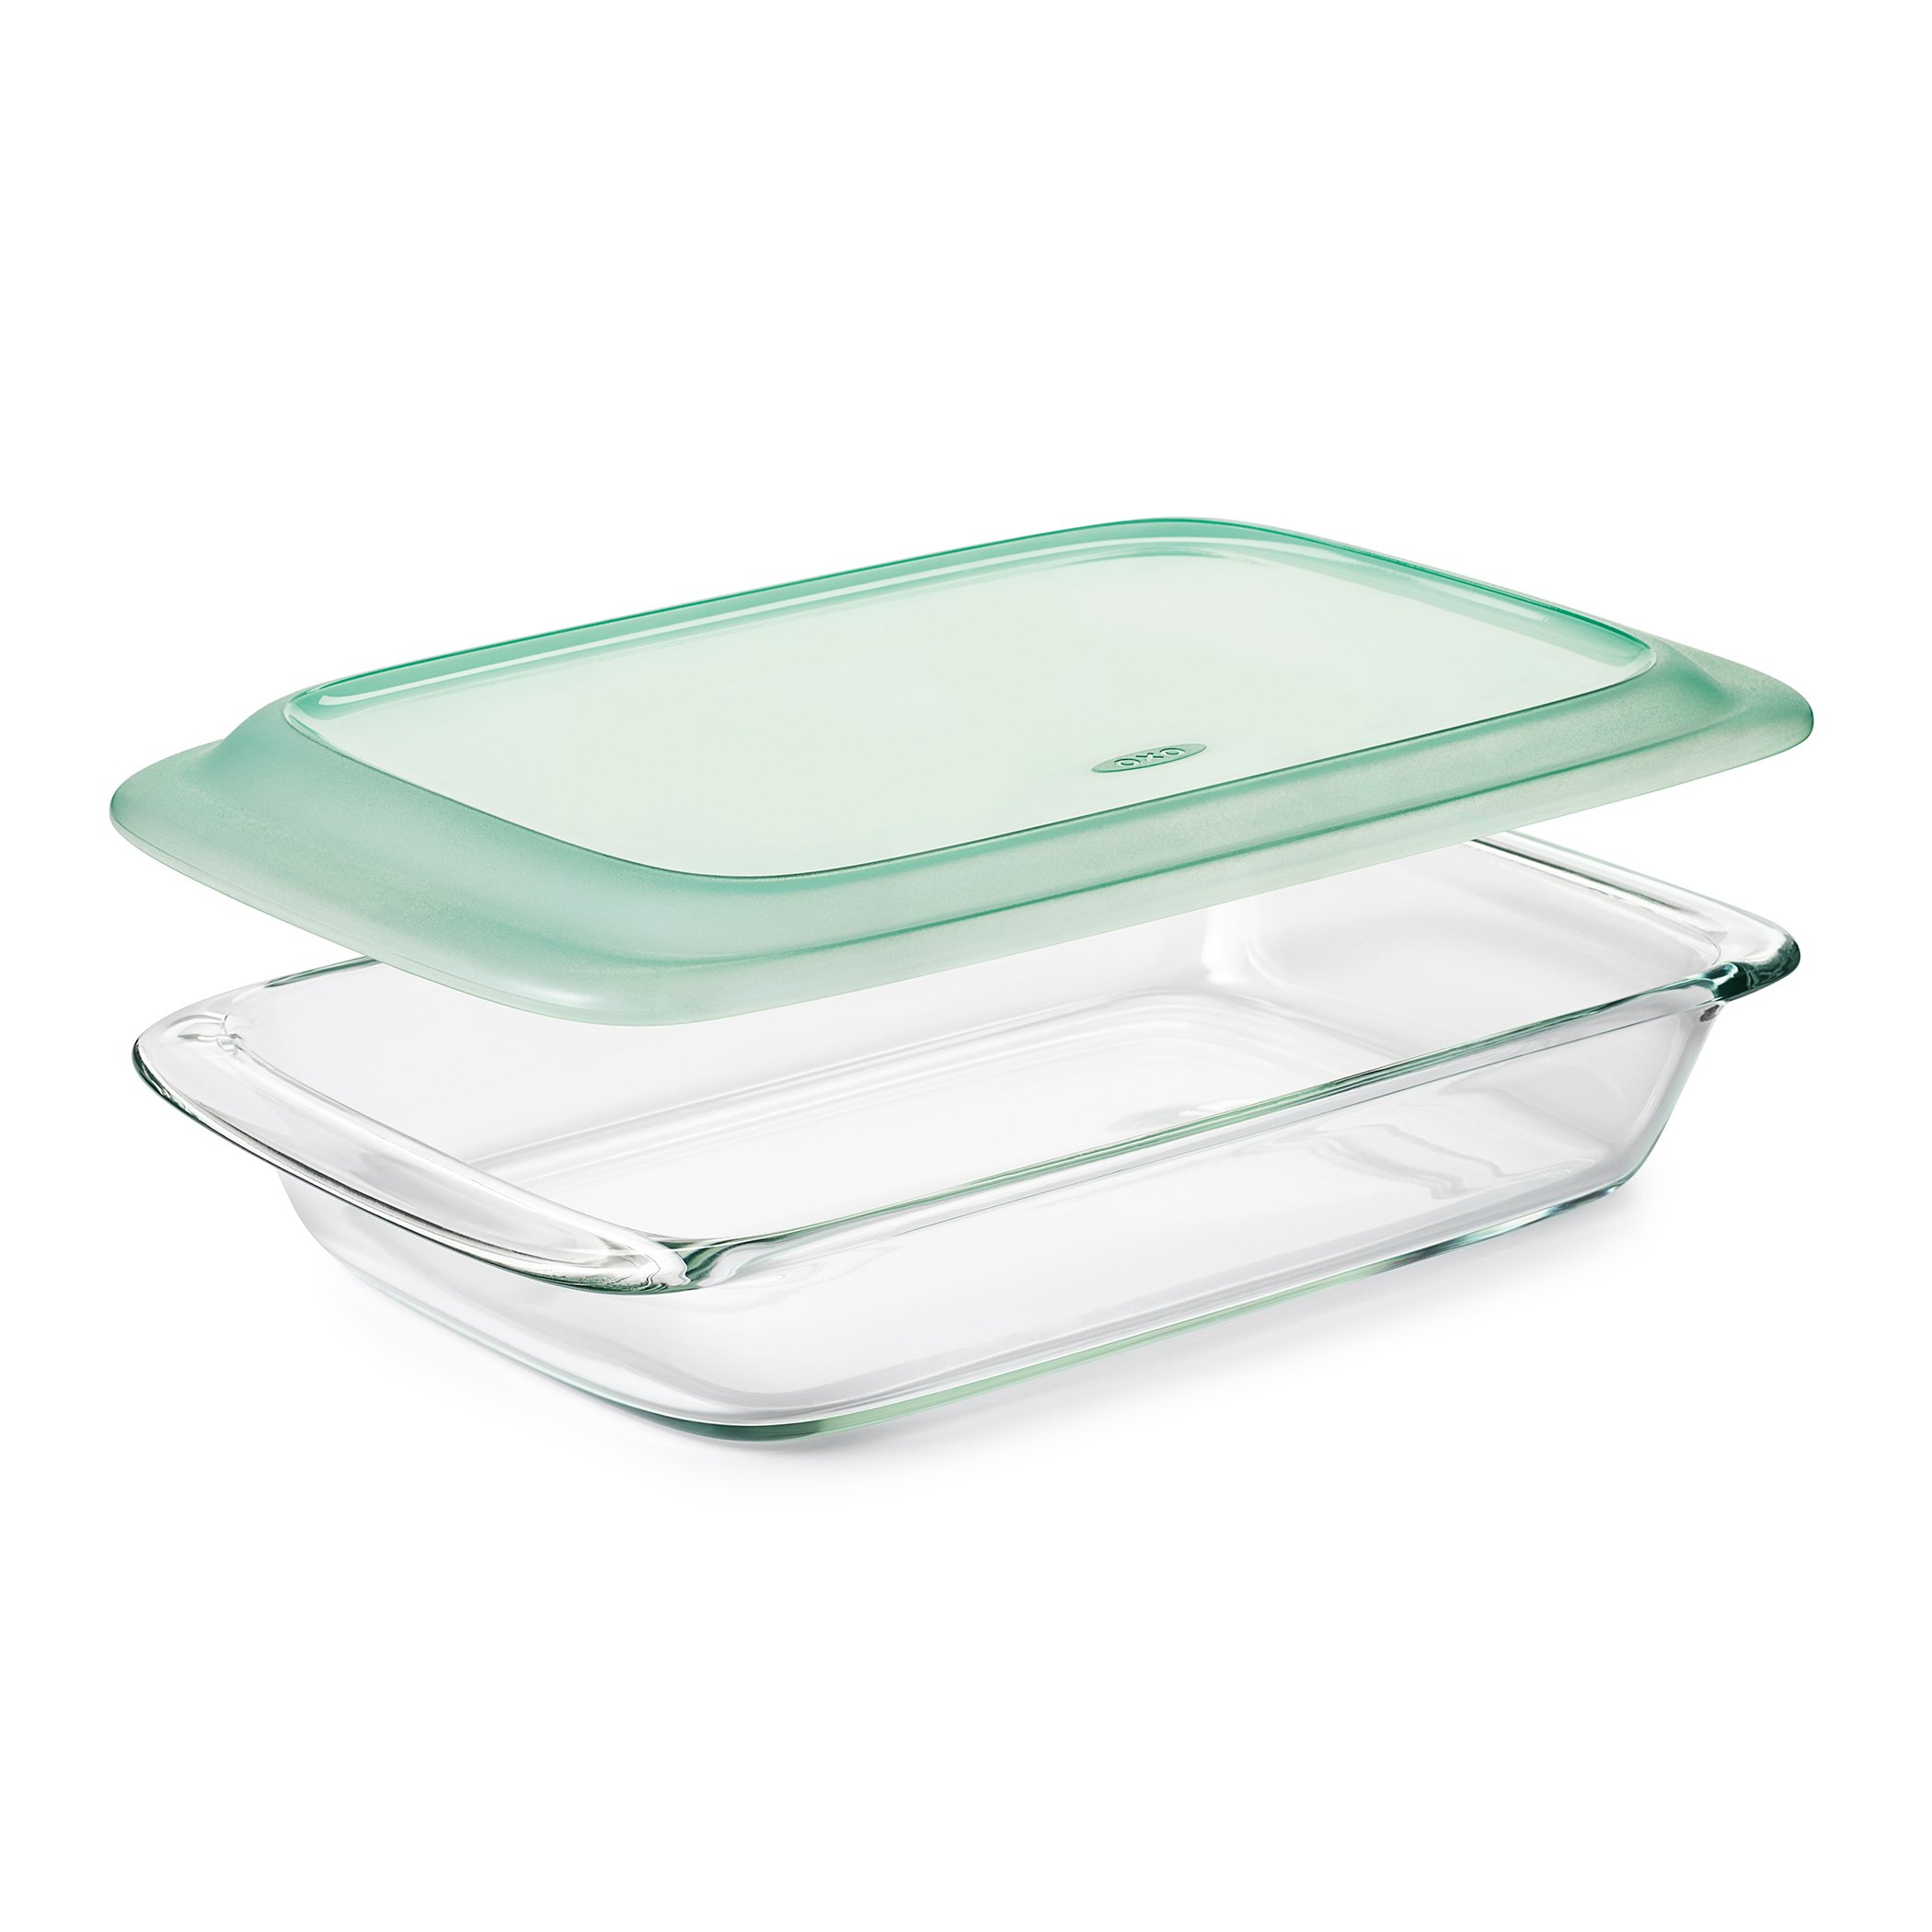 OXO Good Grips Freezer-to-Oven Safe 3 Qt Glass Baking Dish with Lid, 9 x 13 by OXO (Image #1)